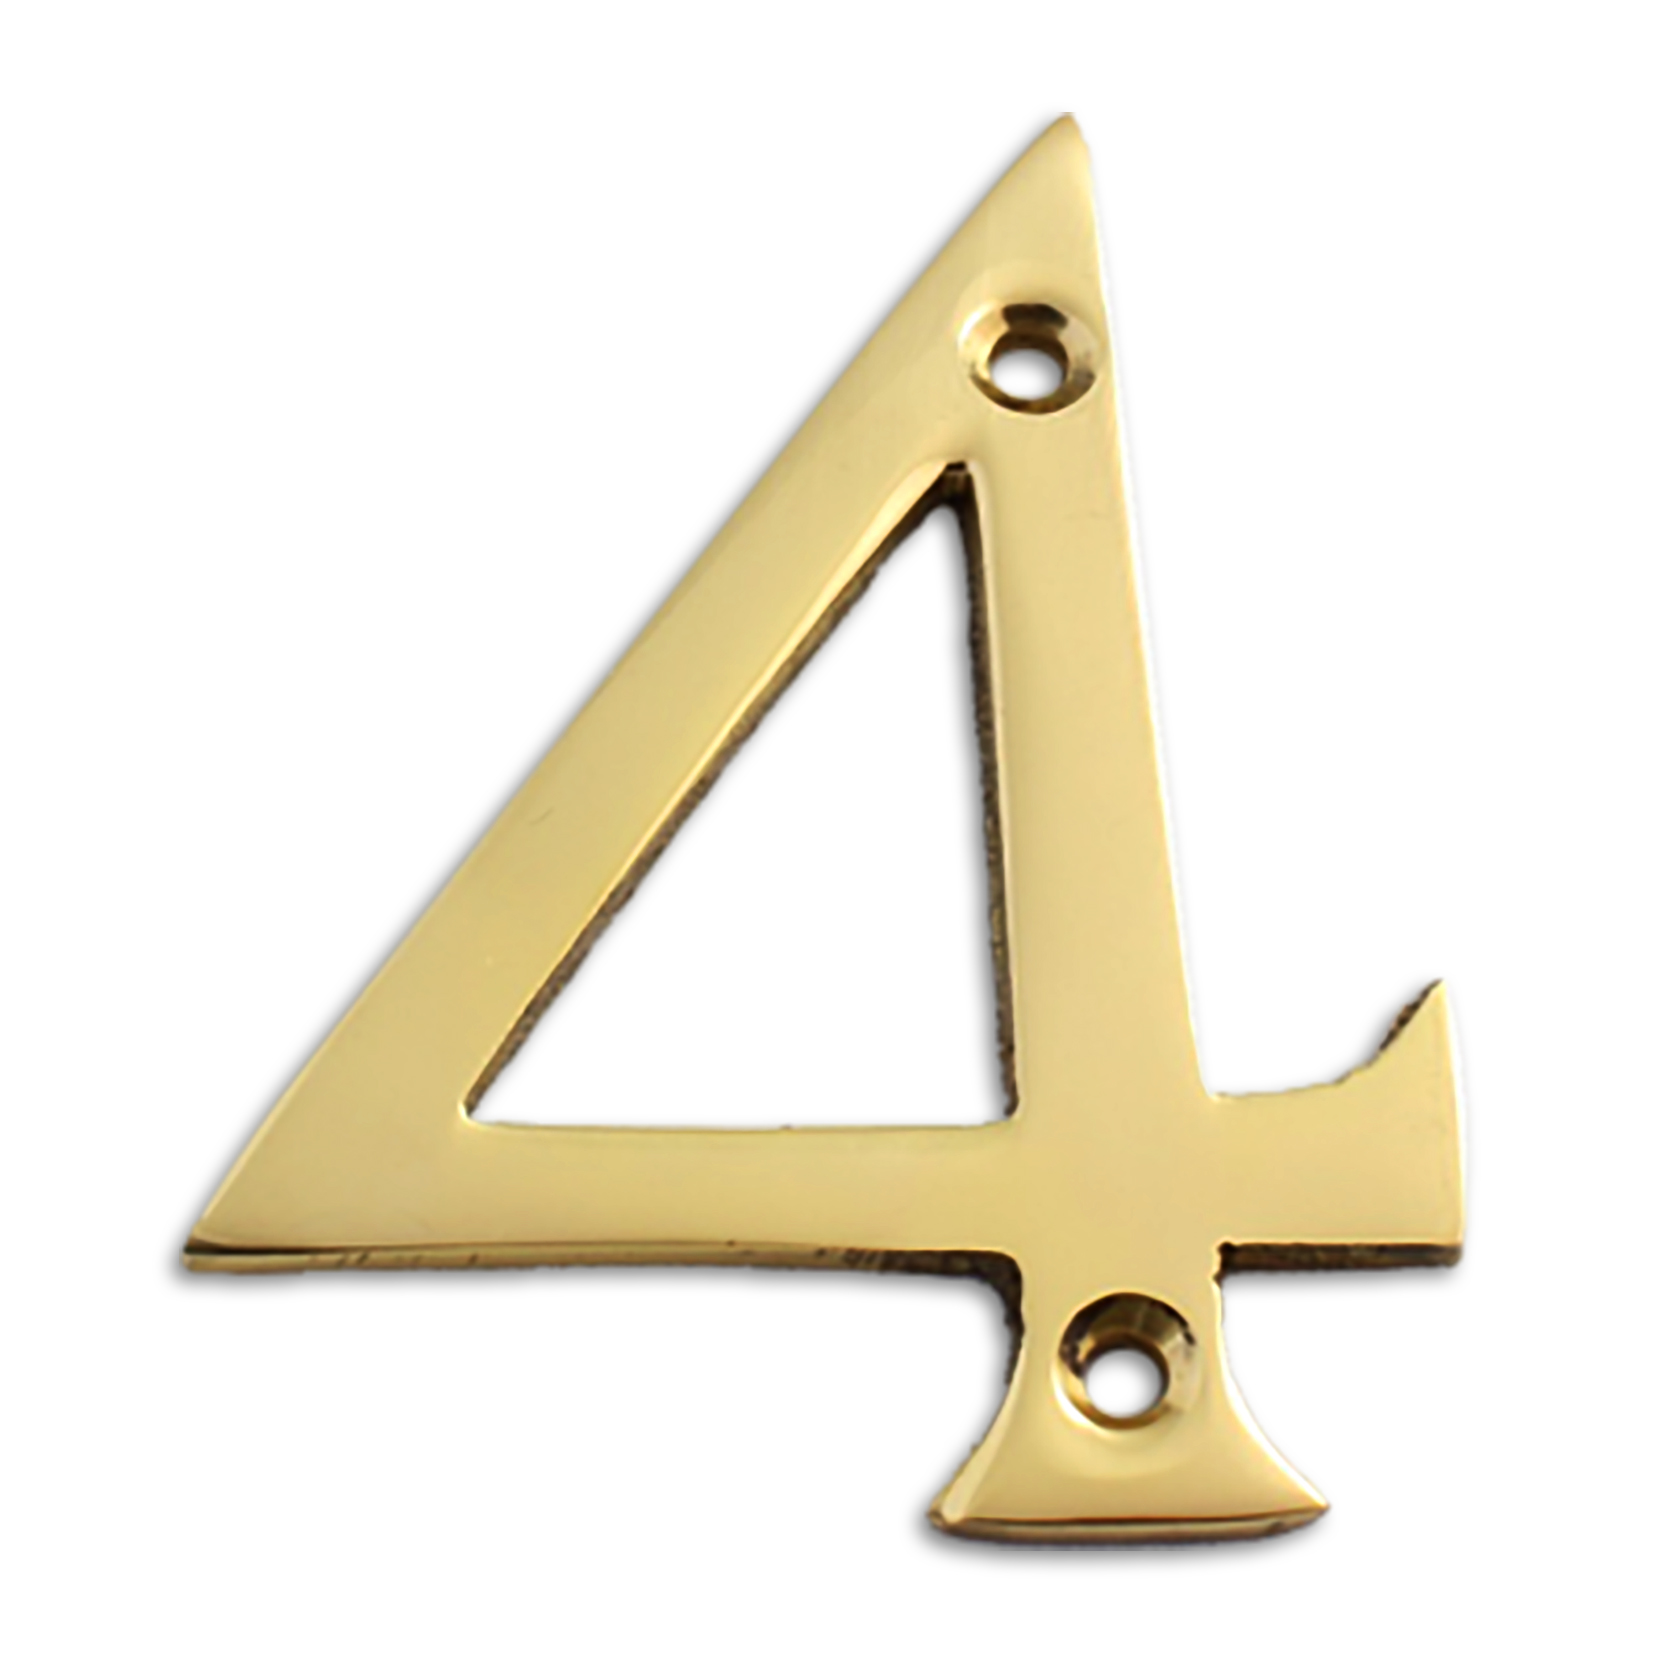 3-inch brass metal house number in polished brass finish - metal number 4